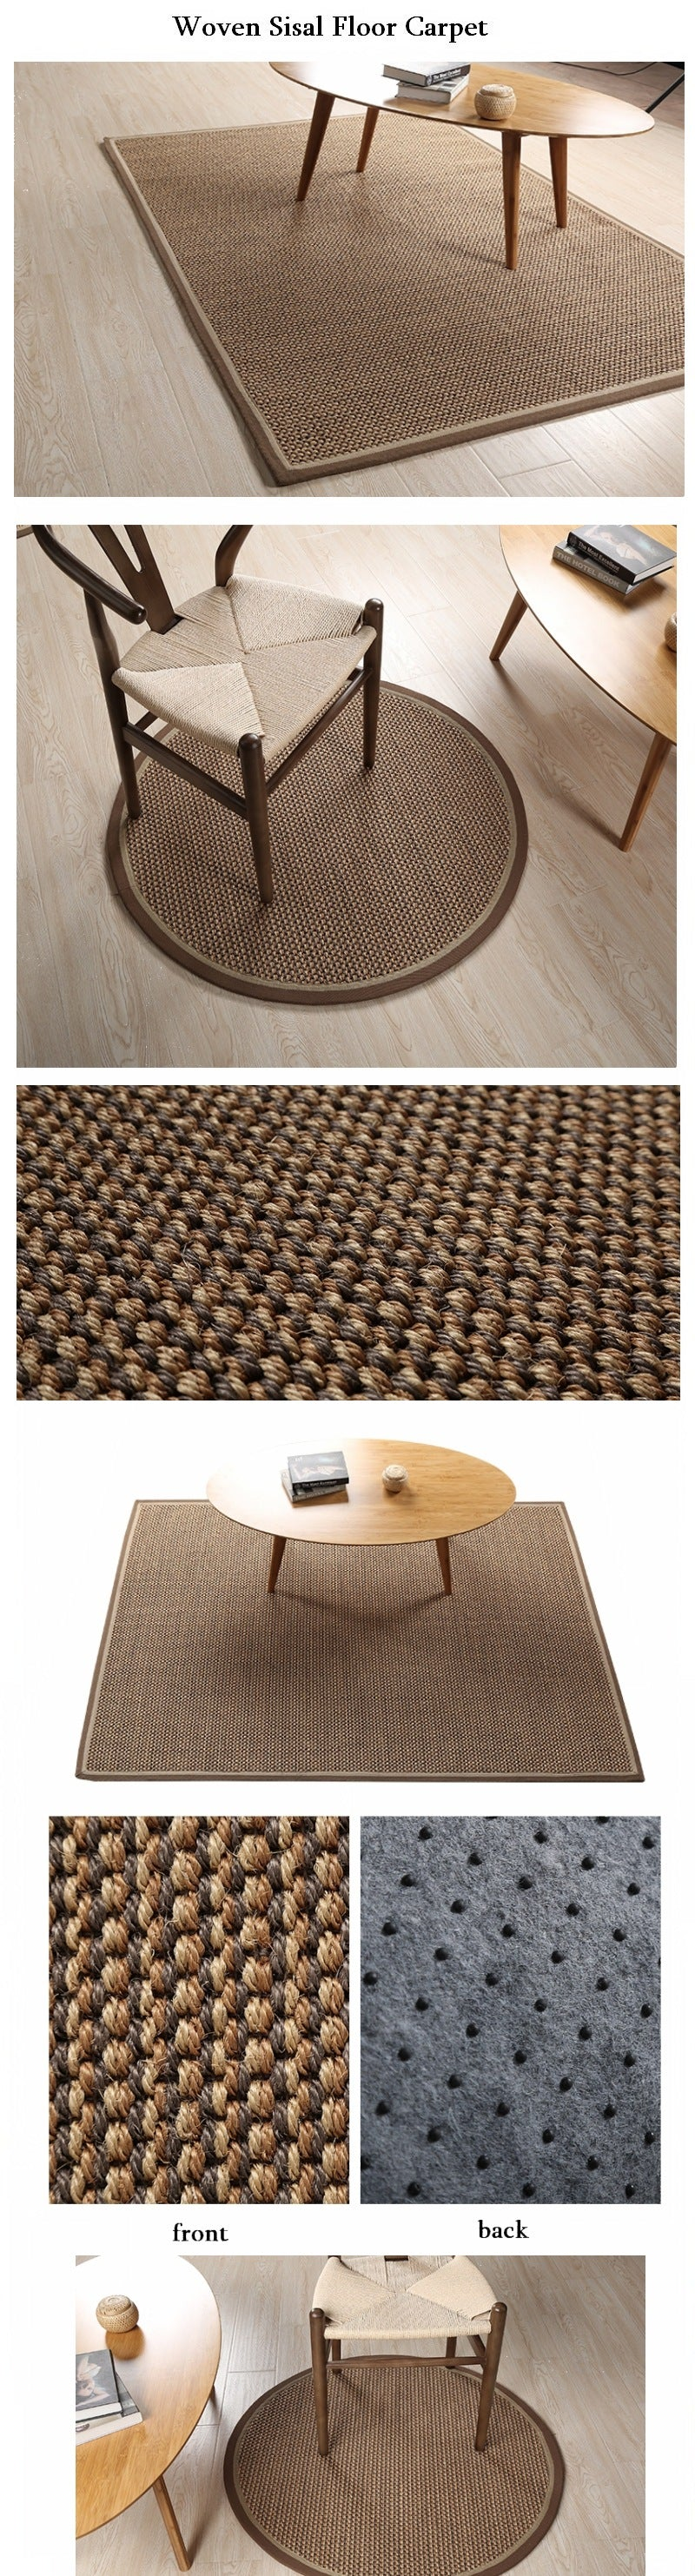 Casual Natural Fiber Natural Sisal Carpet, Rustic Floor Carpet and Rugs